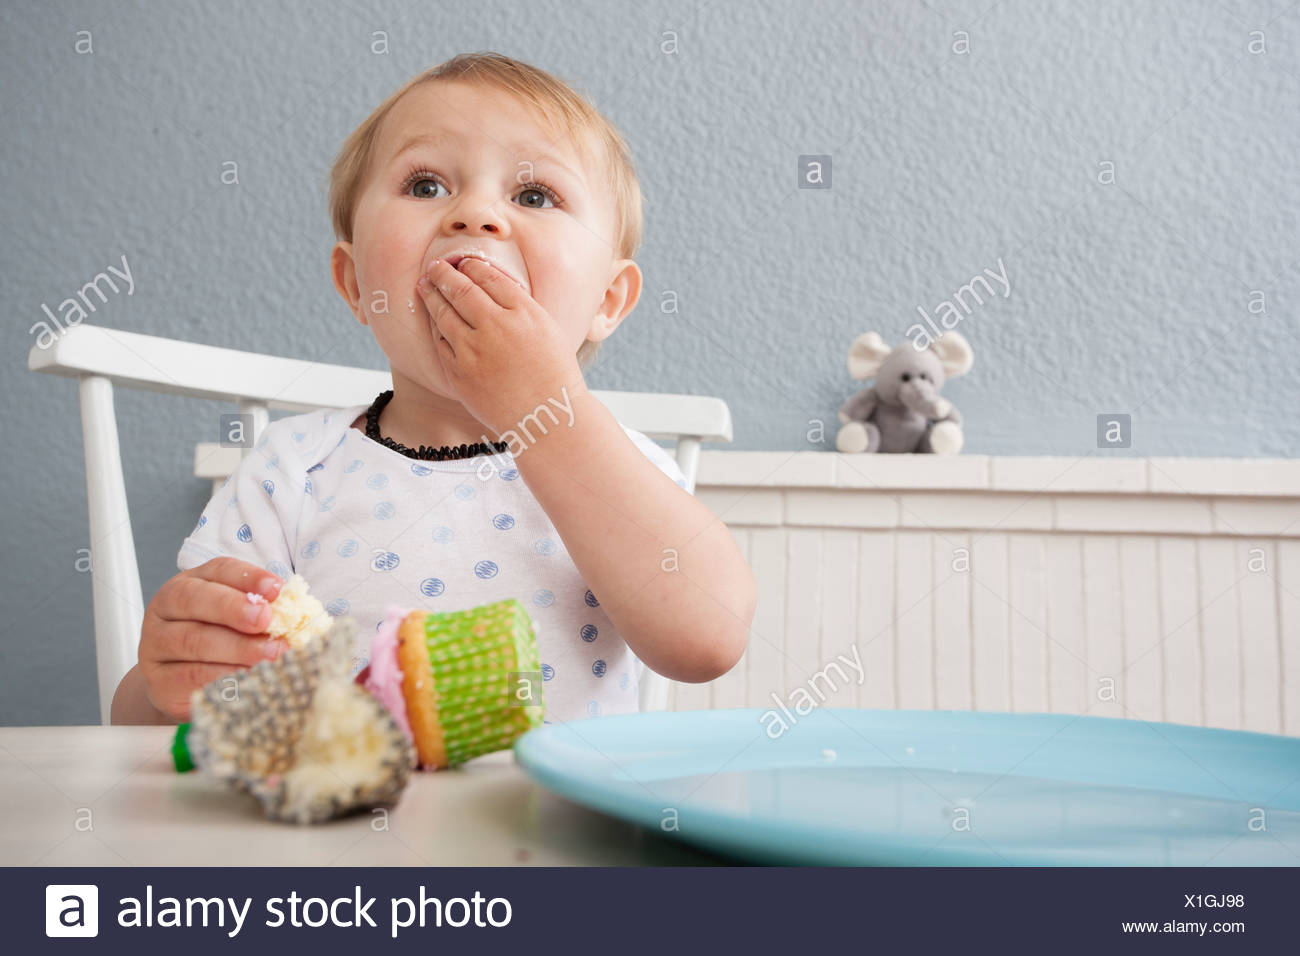 Baby Boy eating cupcake Photo Stock